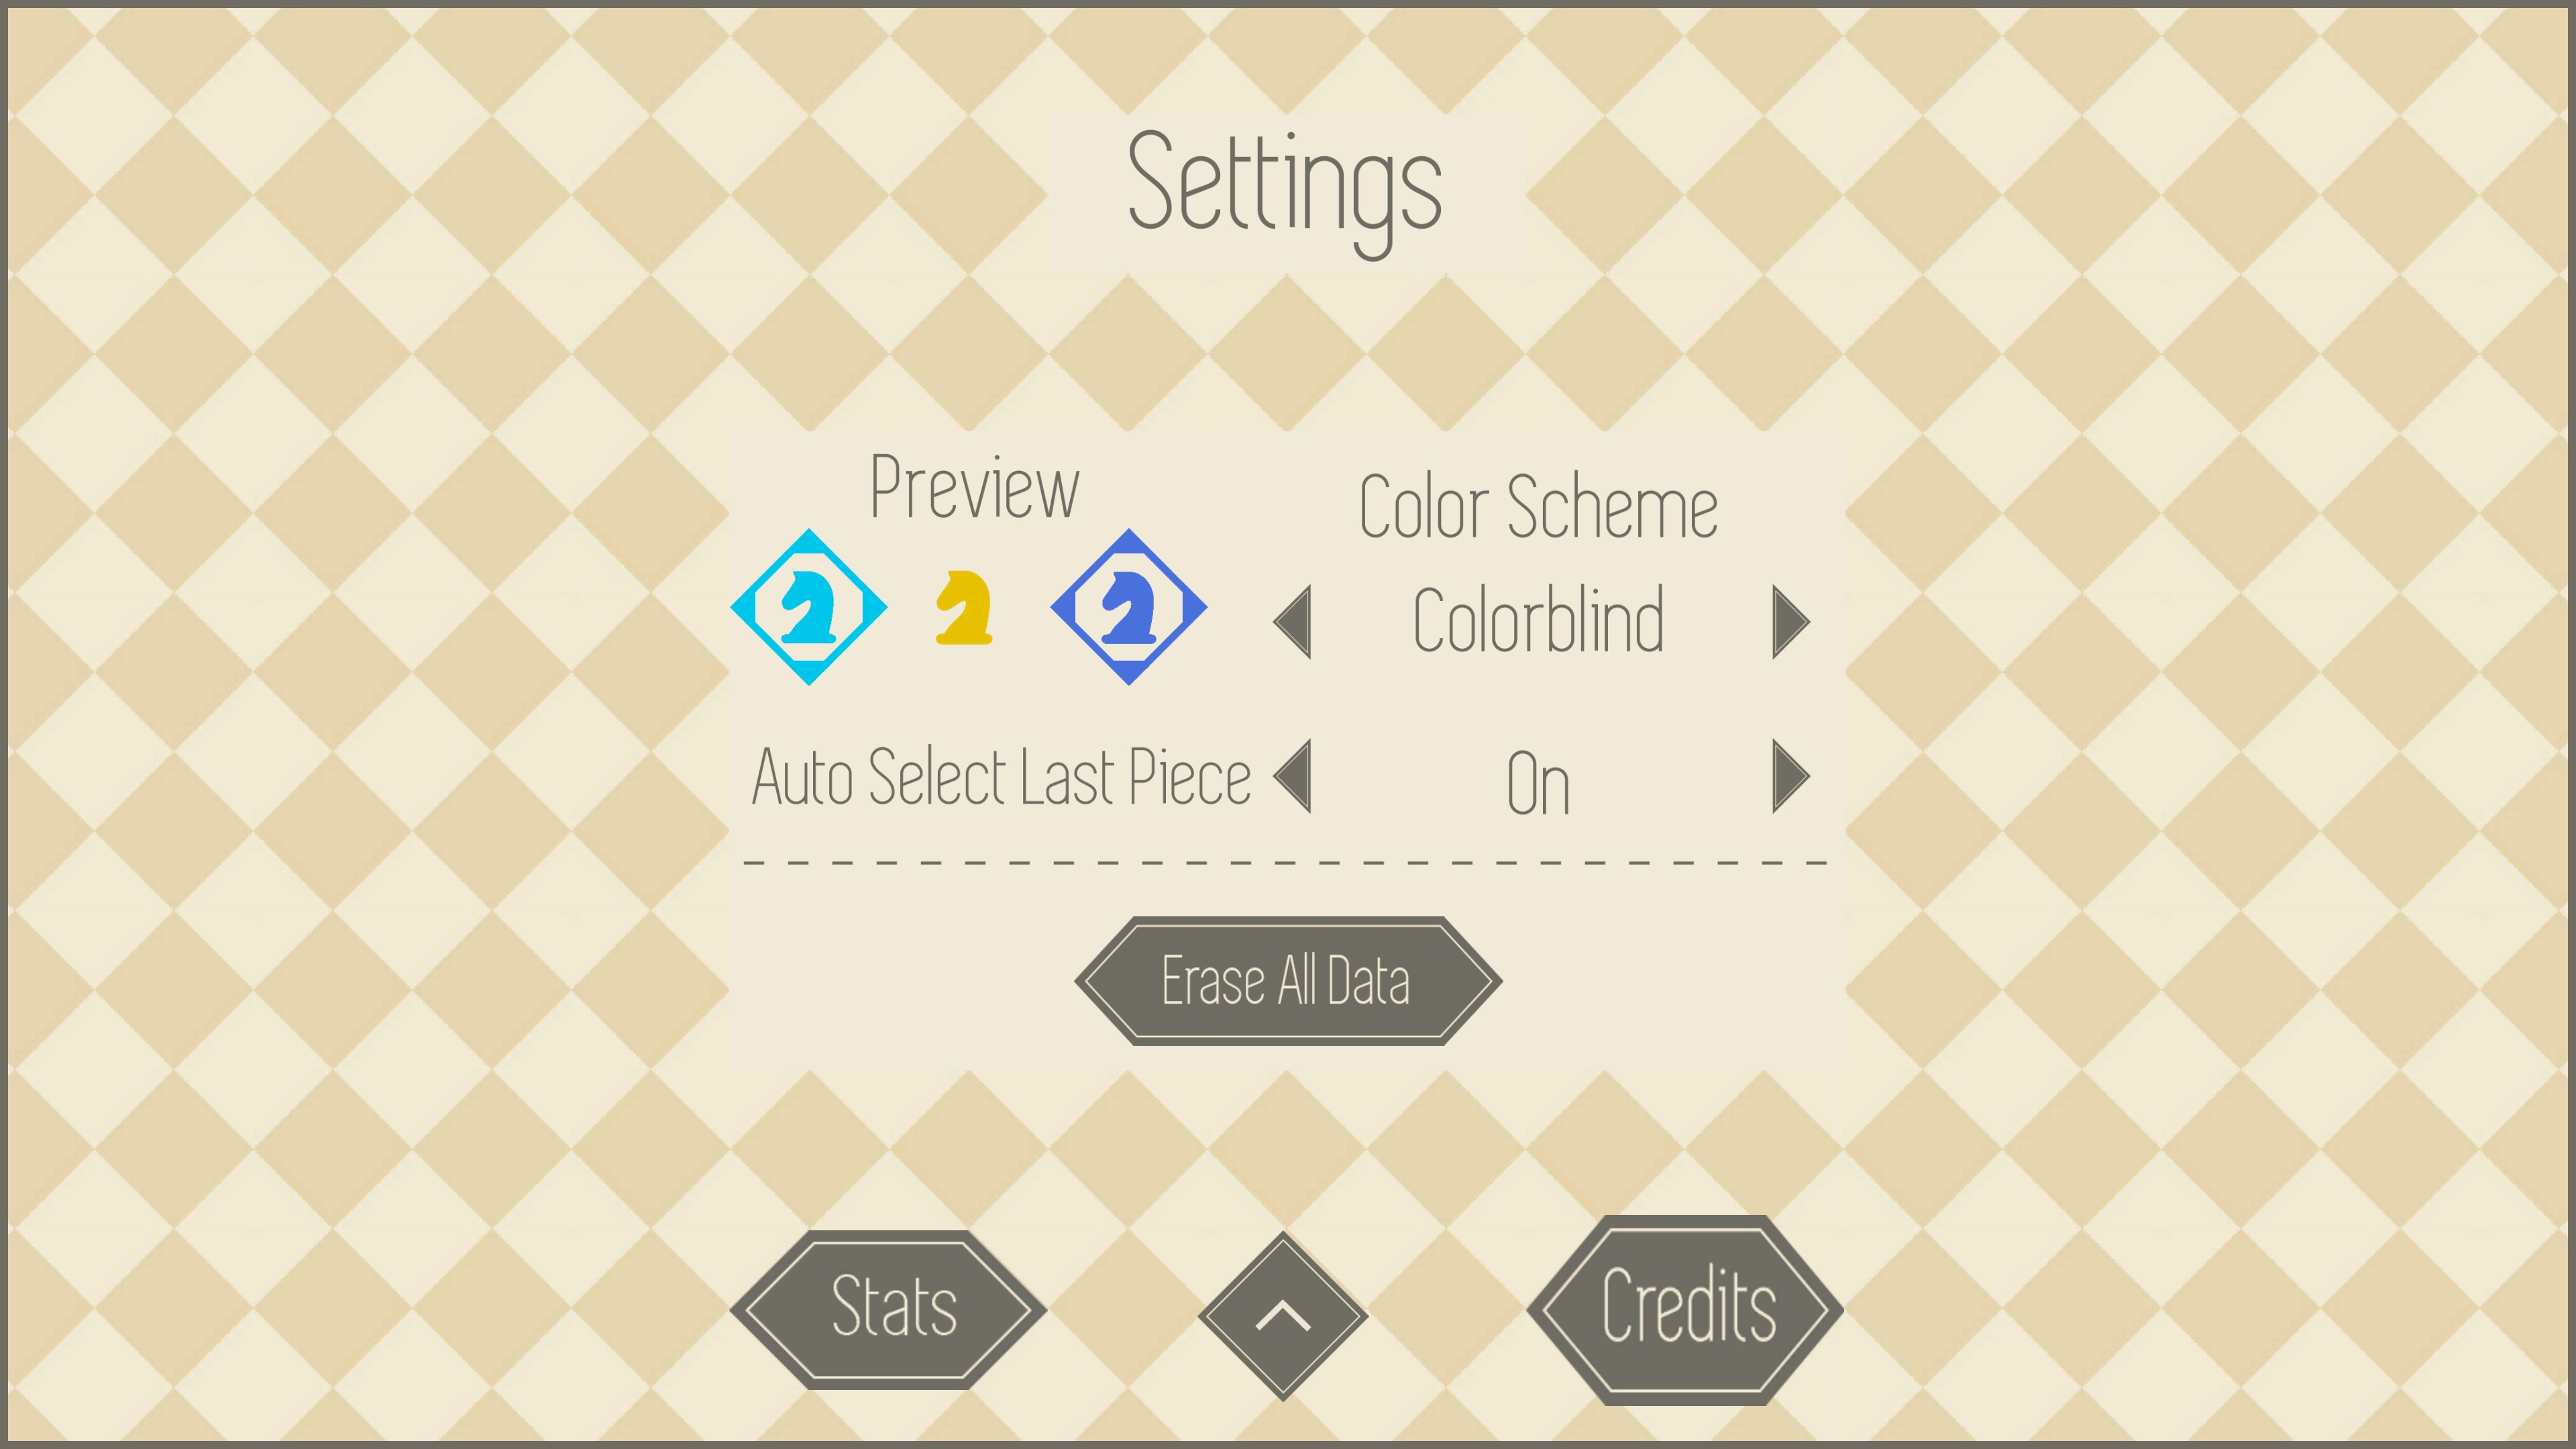 Settings featuring colorblind color scheme setting, auto select last piece options, and stats menu.